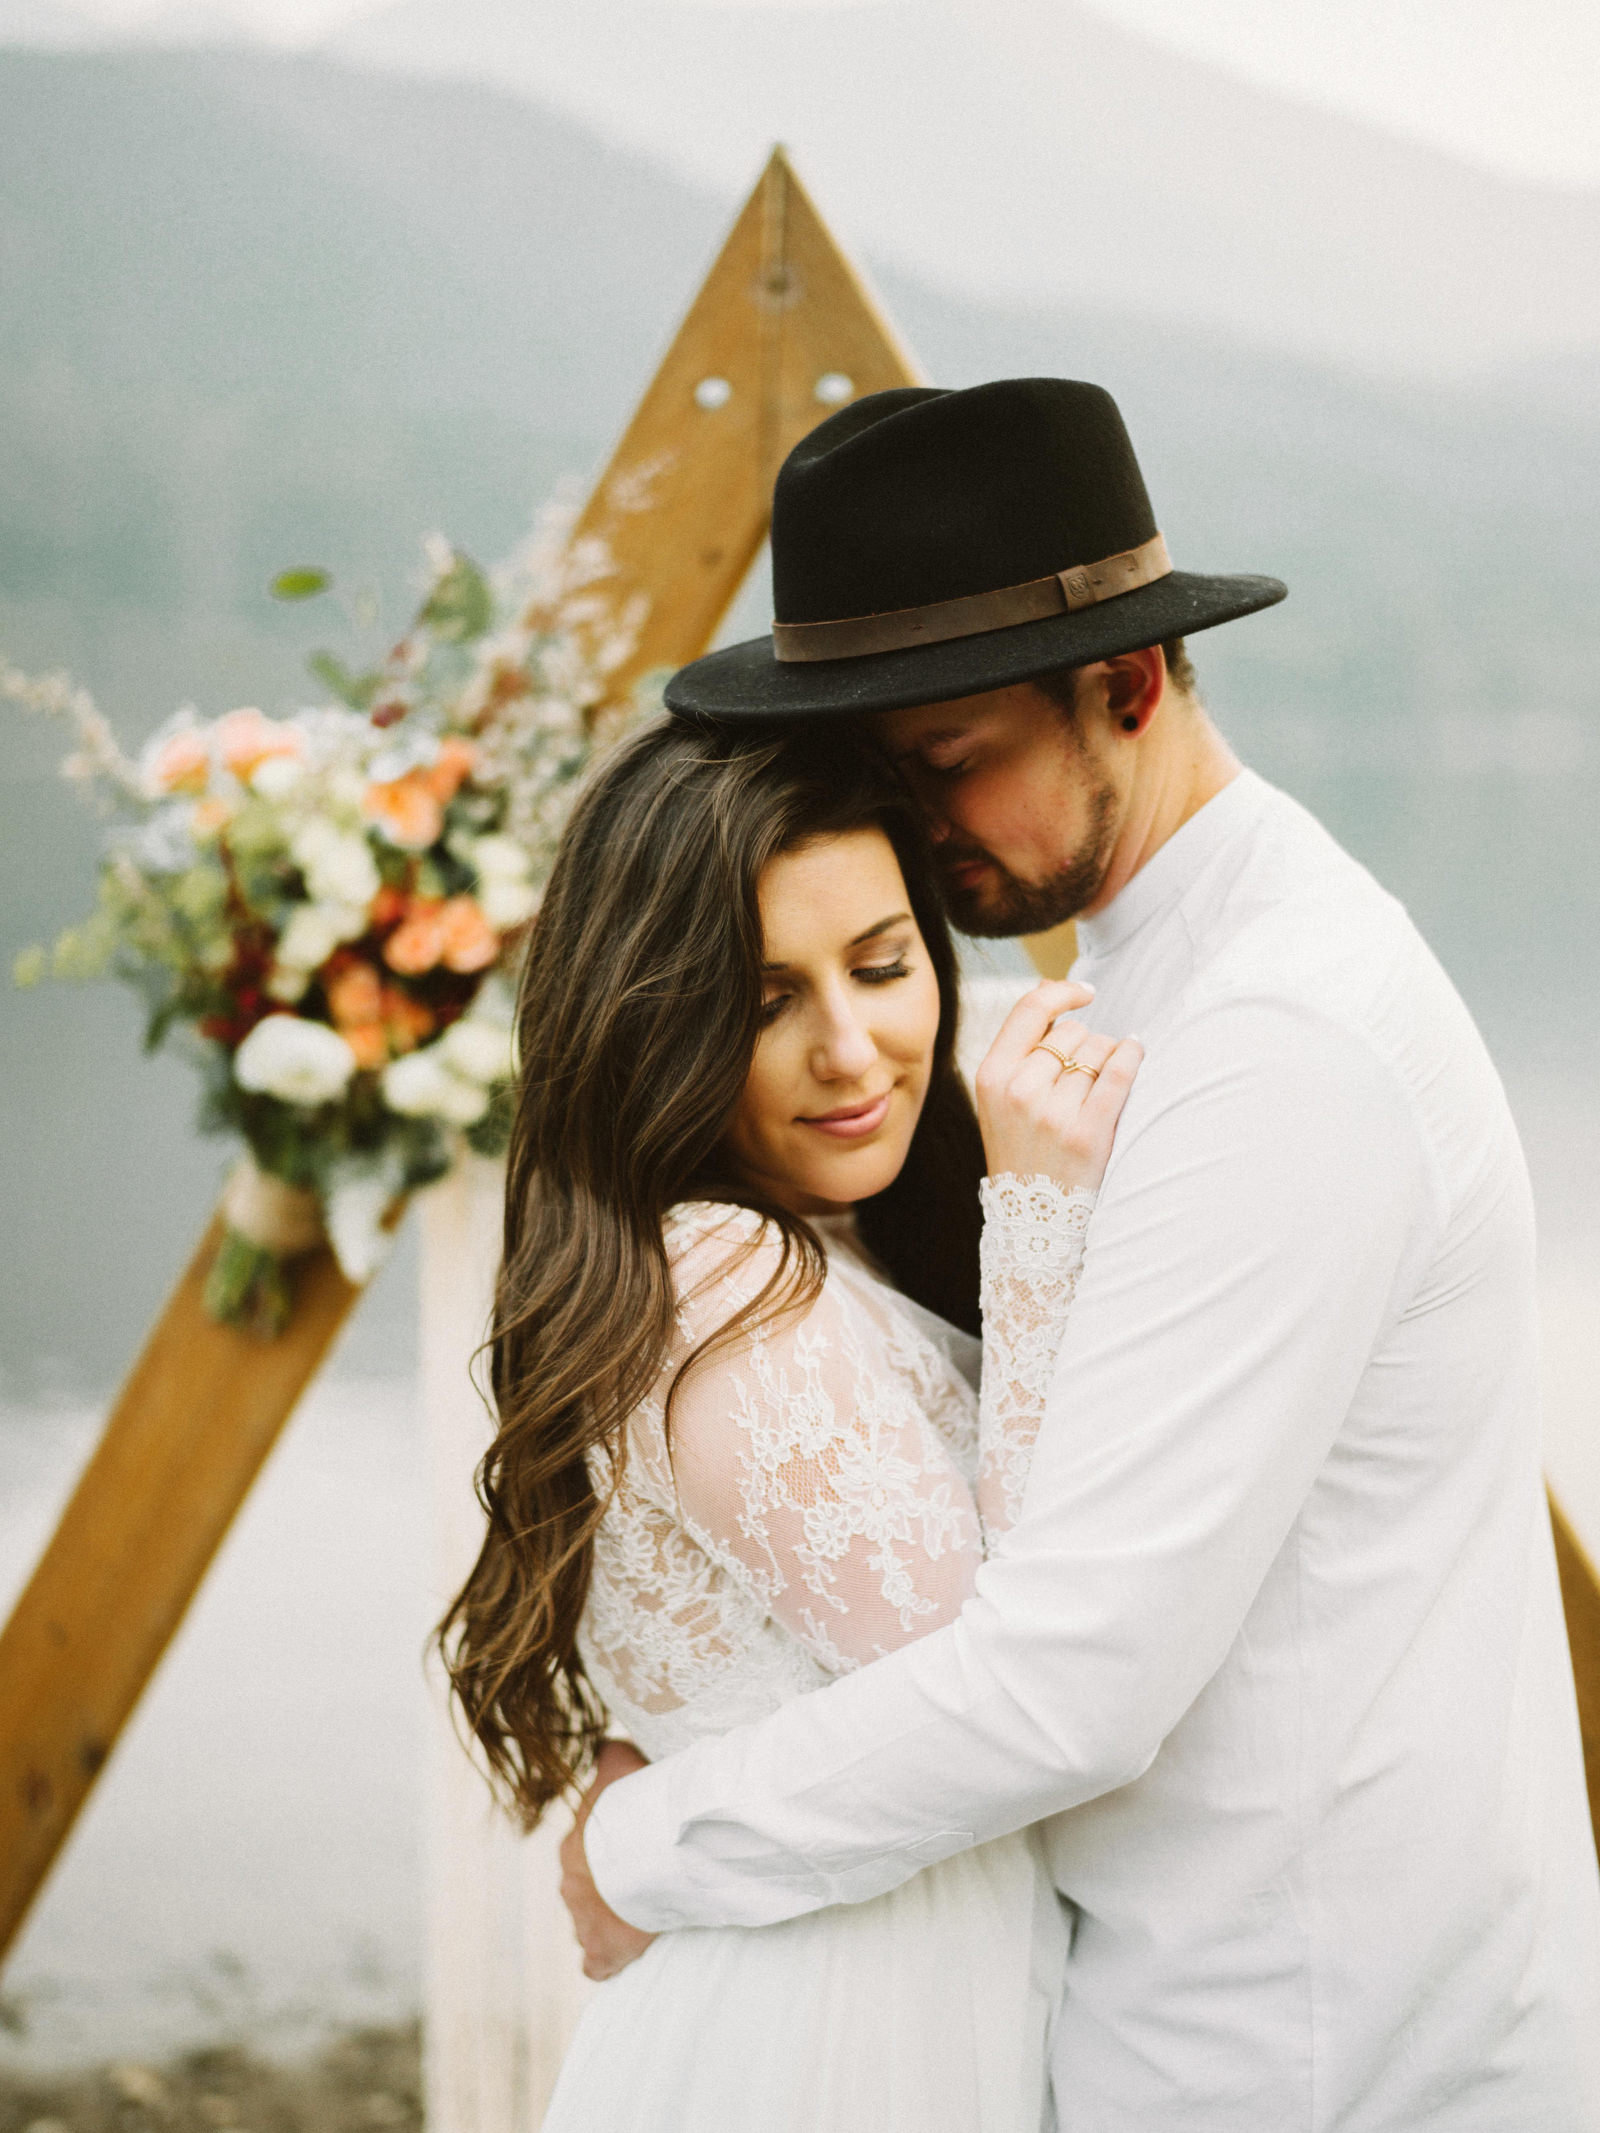 athena-and-camron-seattle-elopement-wedding-benj-haisch-rattlesnake-lake-christian-couple-goals67